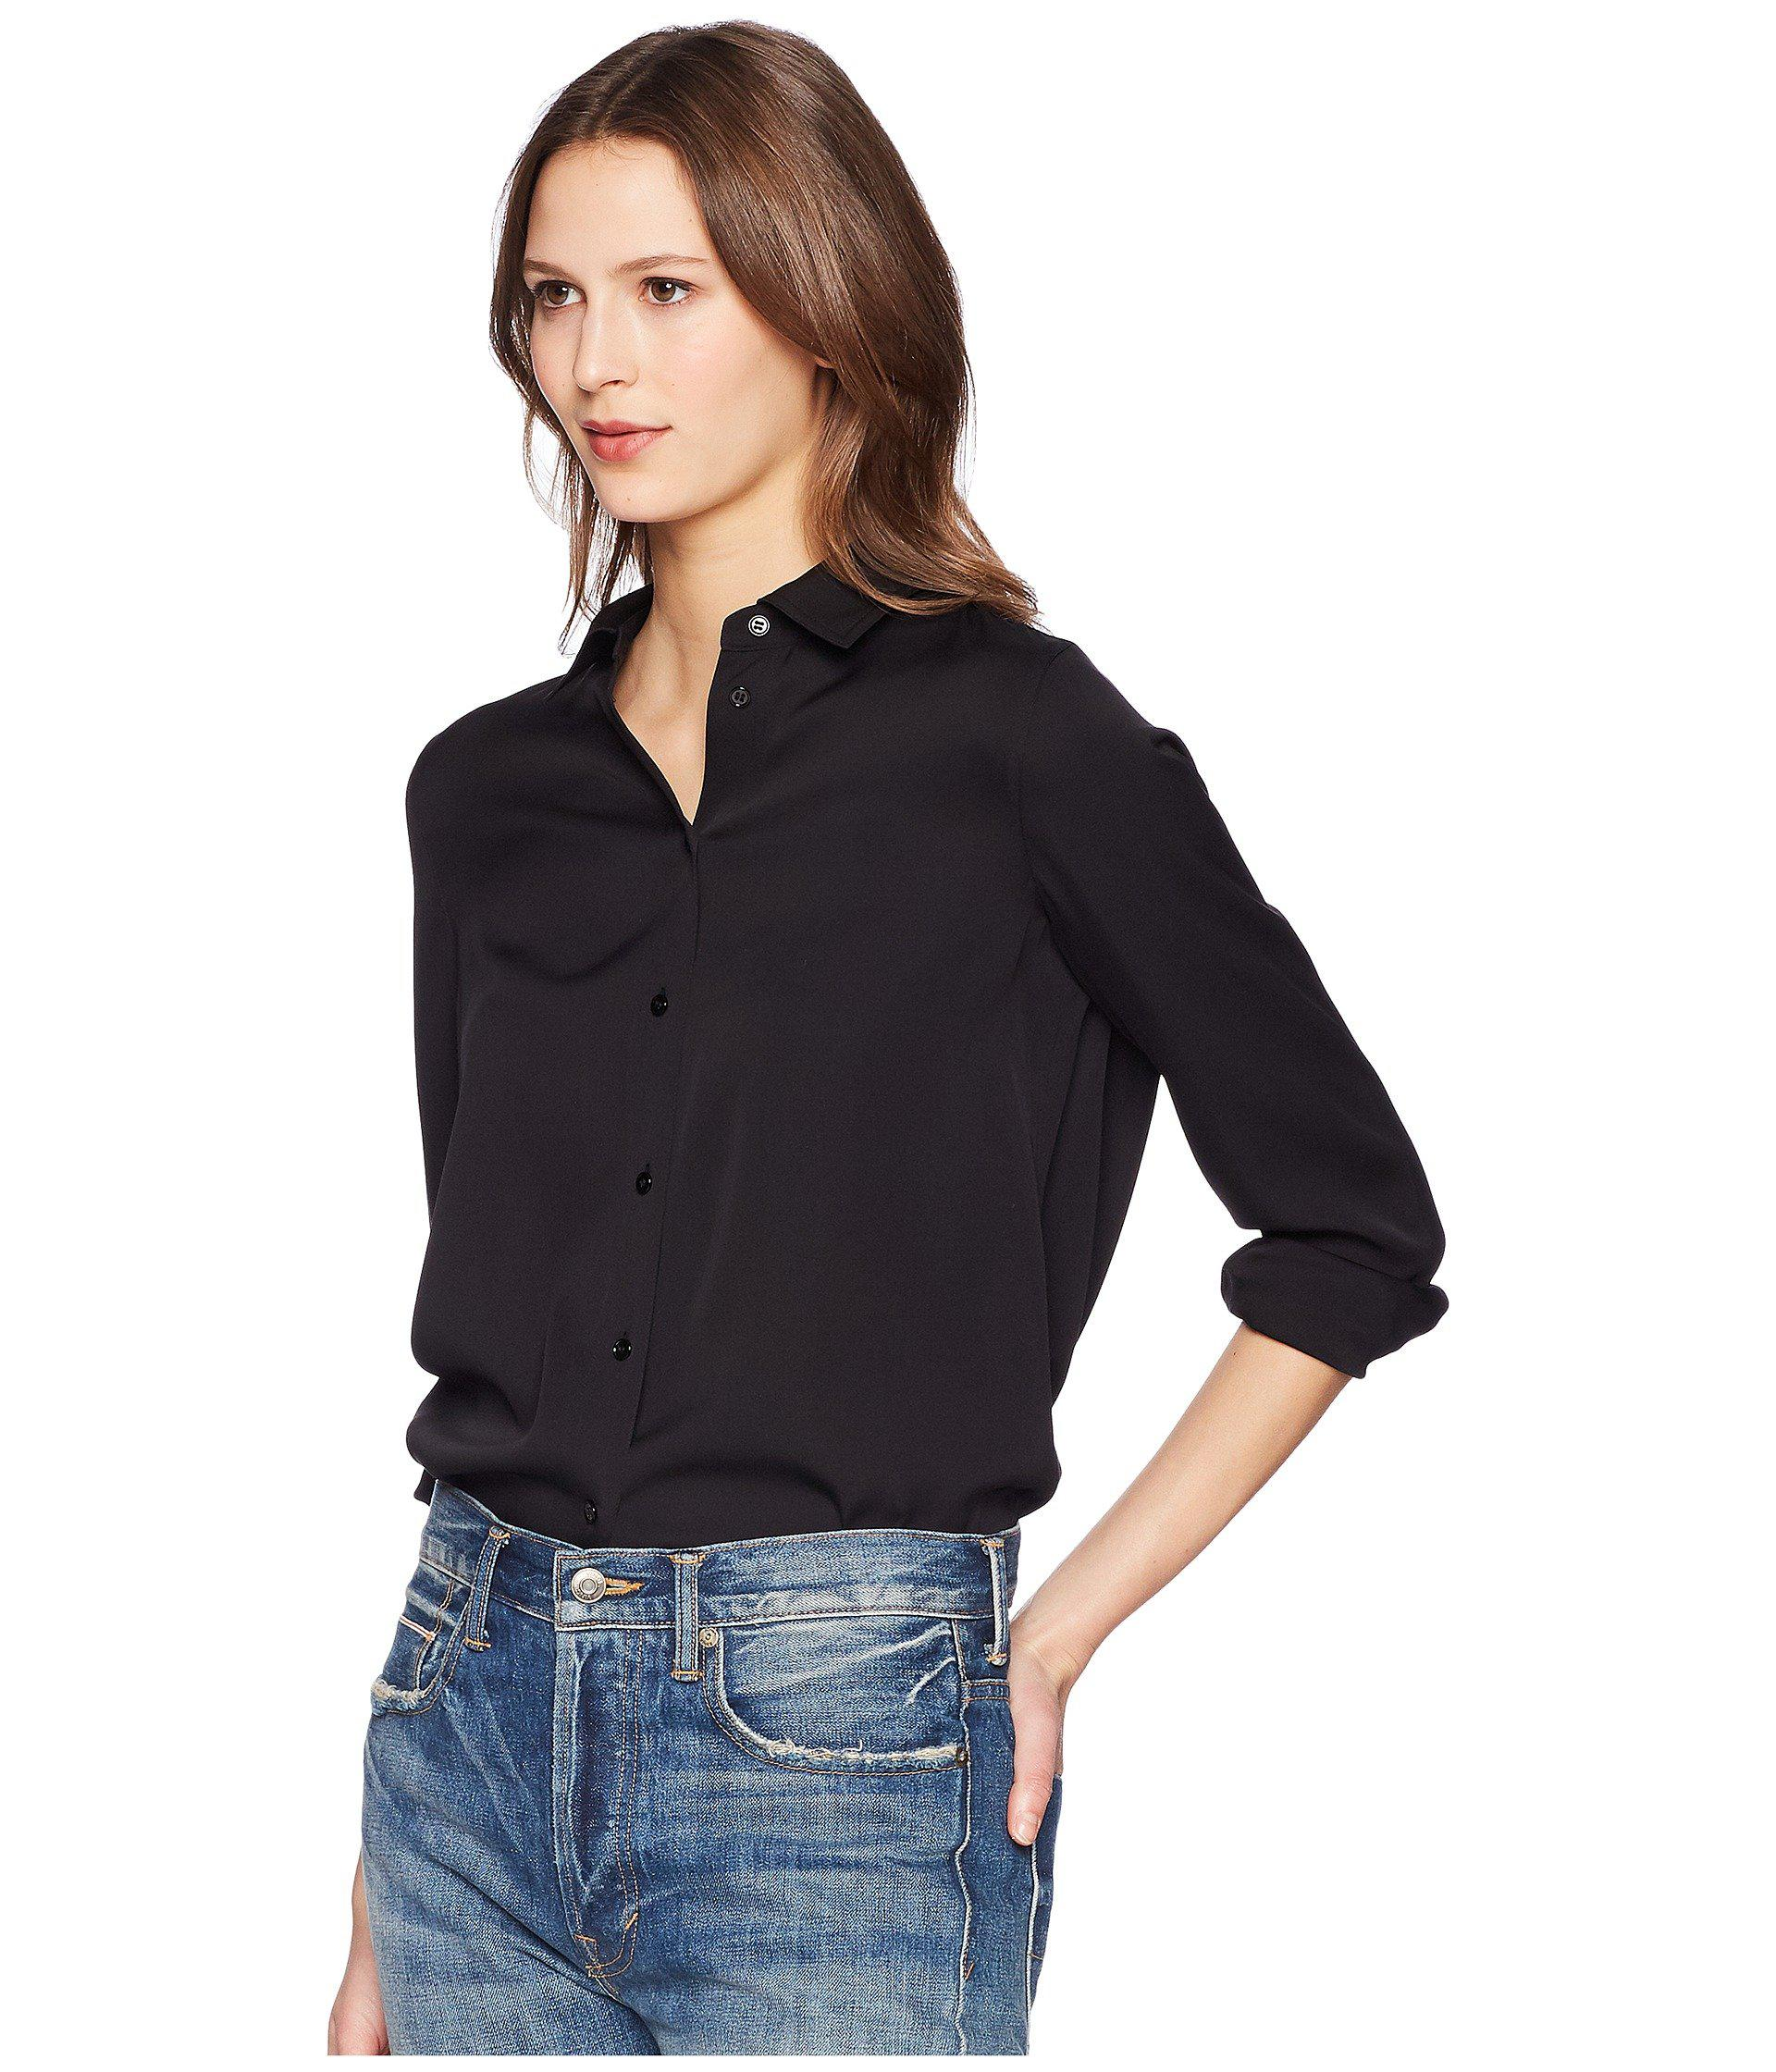 5c966e97f34a13 Lyst - Vince Slim Fitted Blouse (black) Women s Blouse in Black